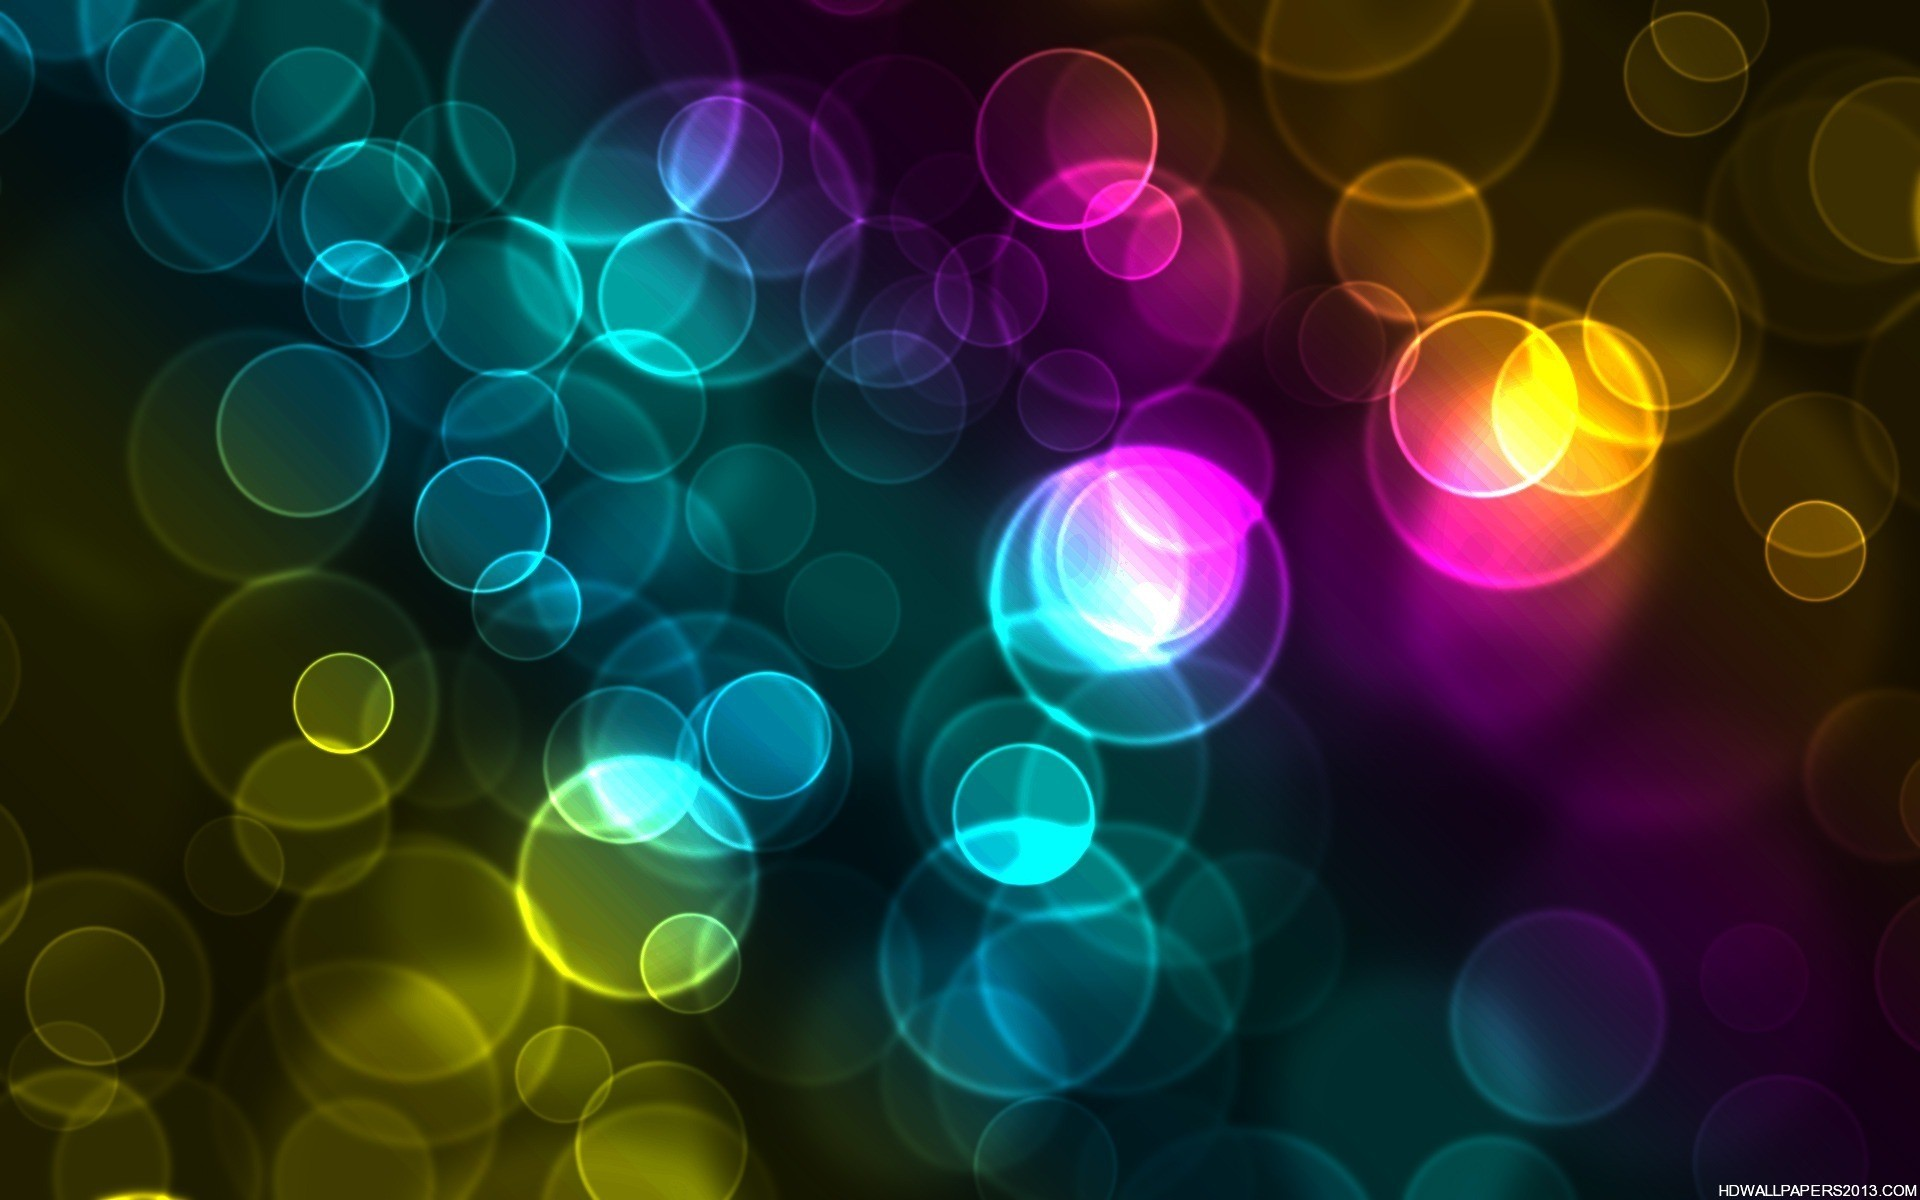 Wallpapers Hd Wallpapers Colorful Wallpapers Hd Backgrounds